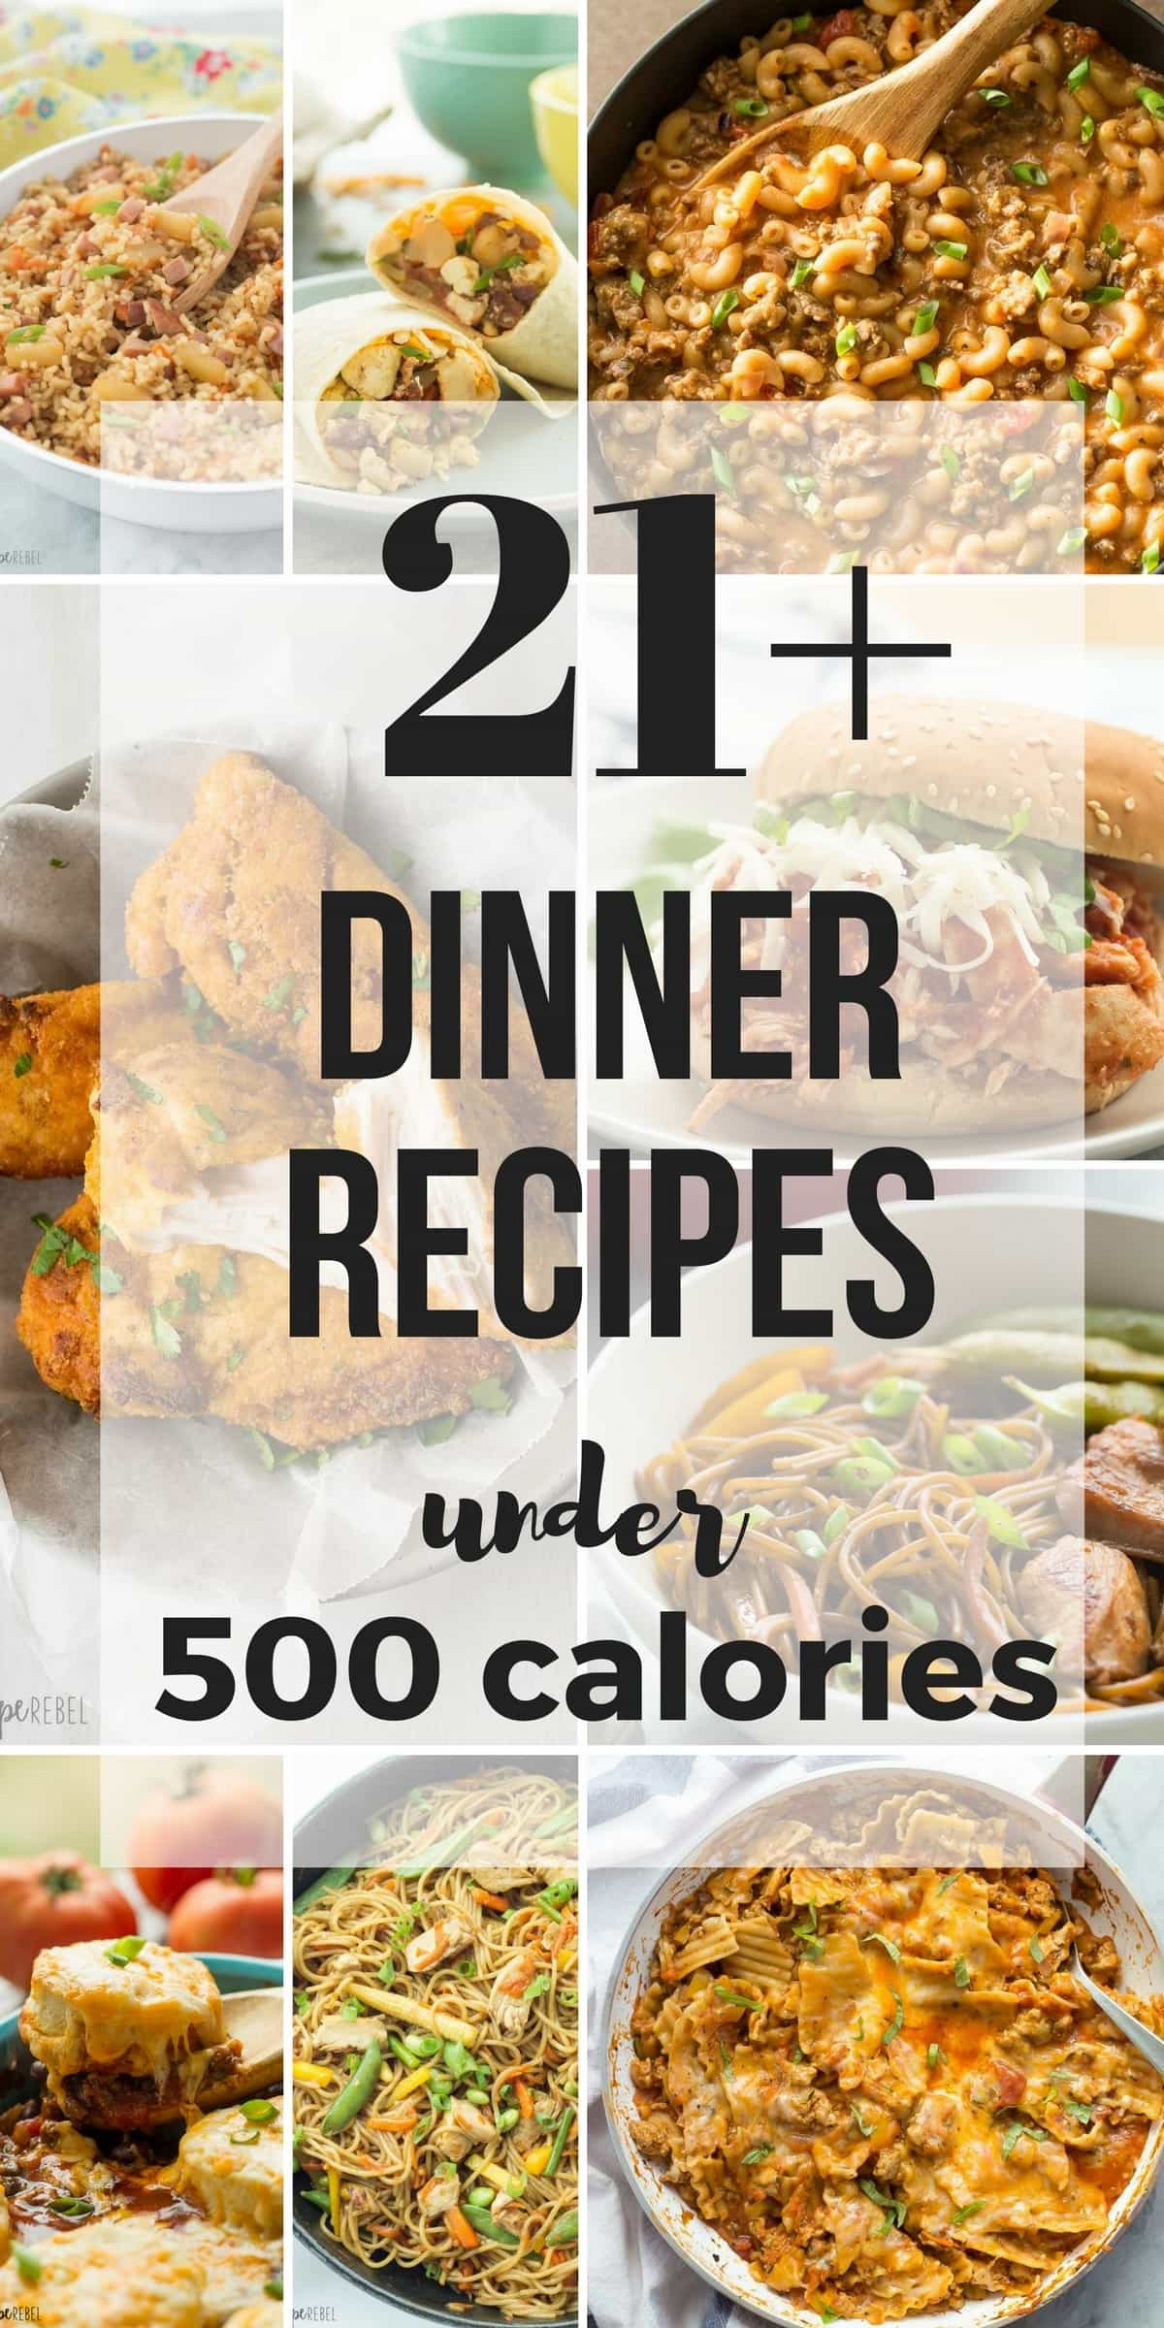 12+ Dinner Recipes Under 12 Calories - Easy Recipes High In Calories